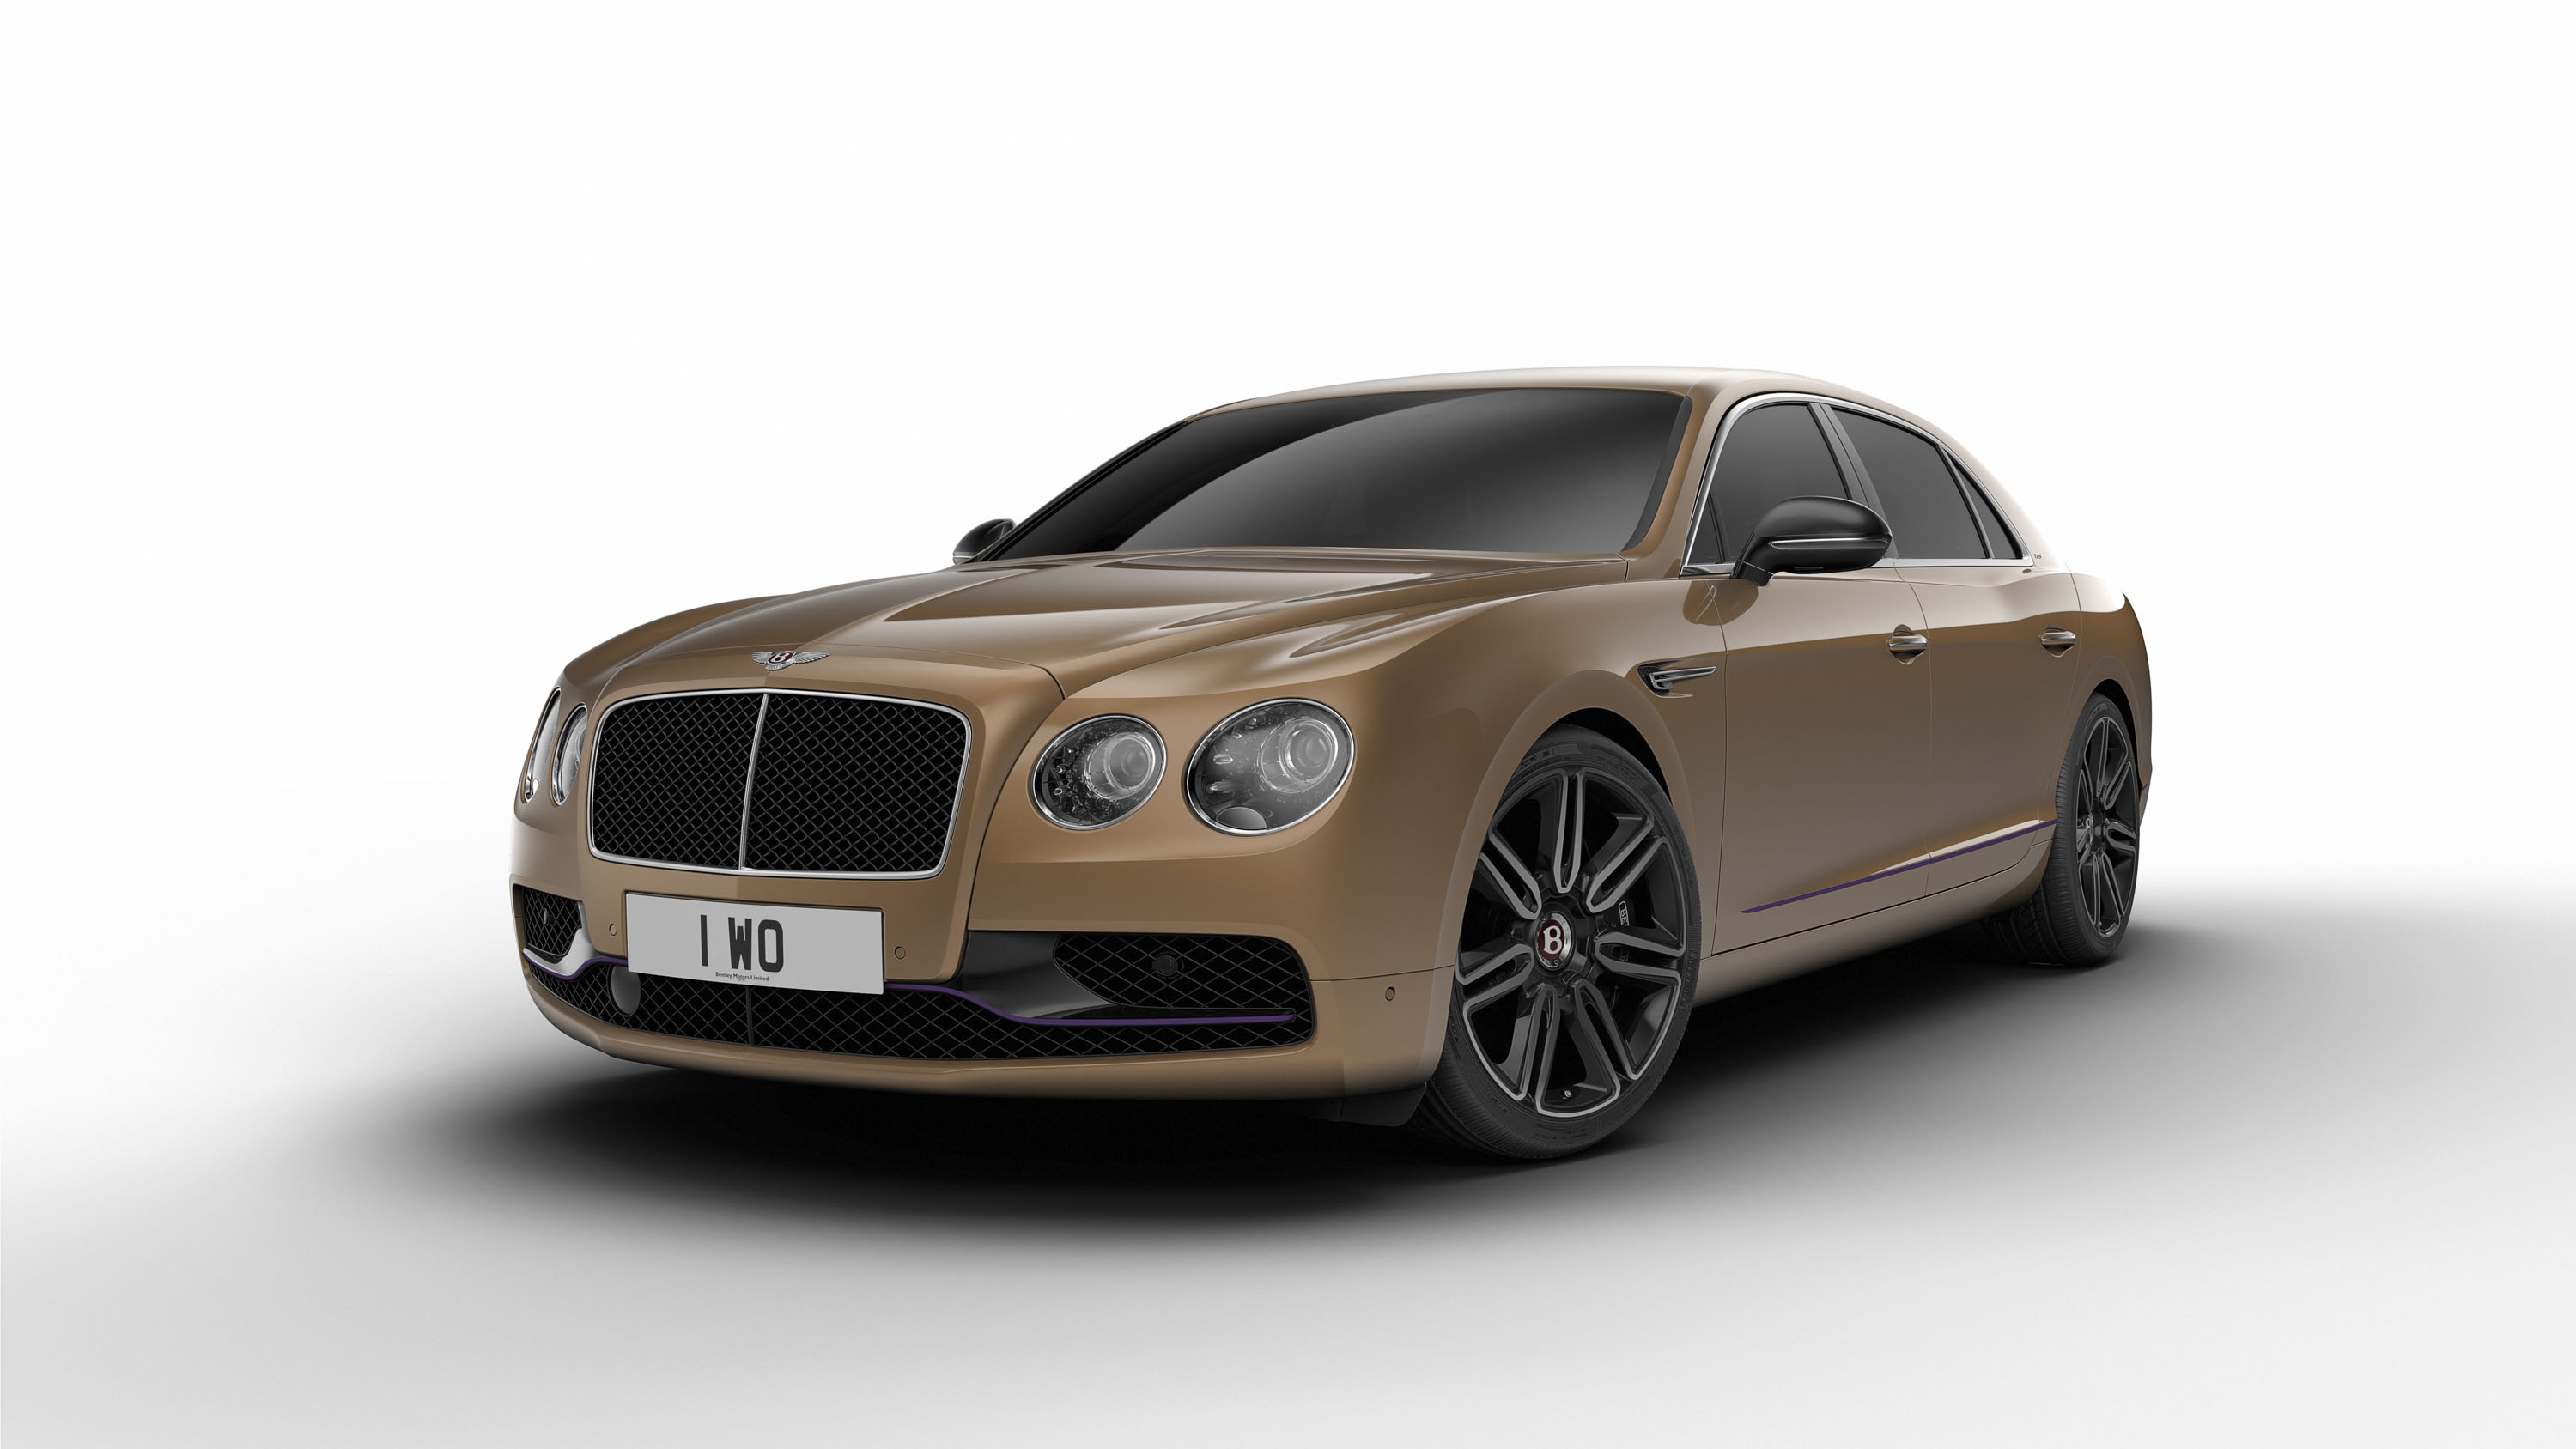 is philippines best bentayga priceprice list car sale the bentley click here of a price for what cost